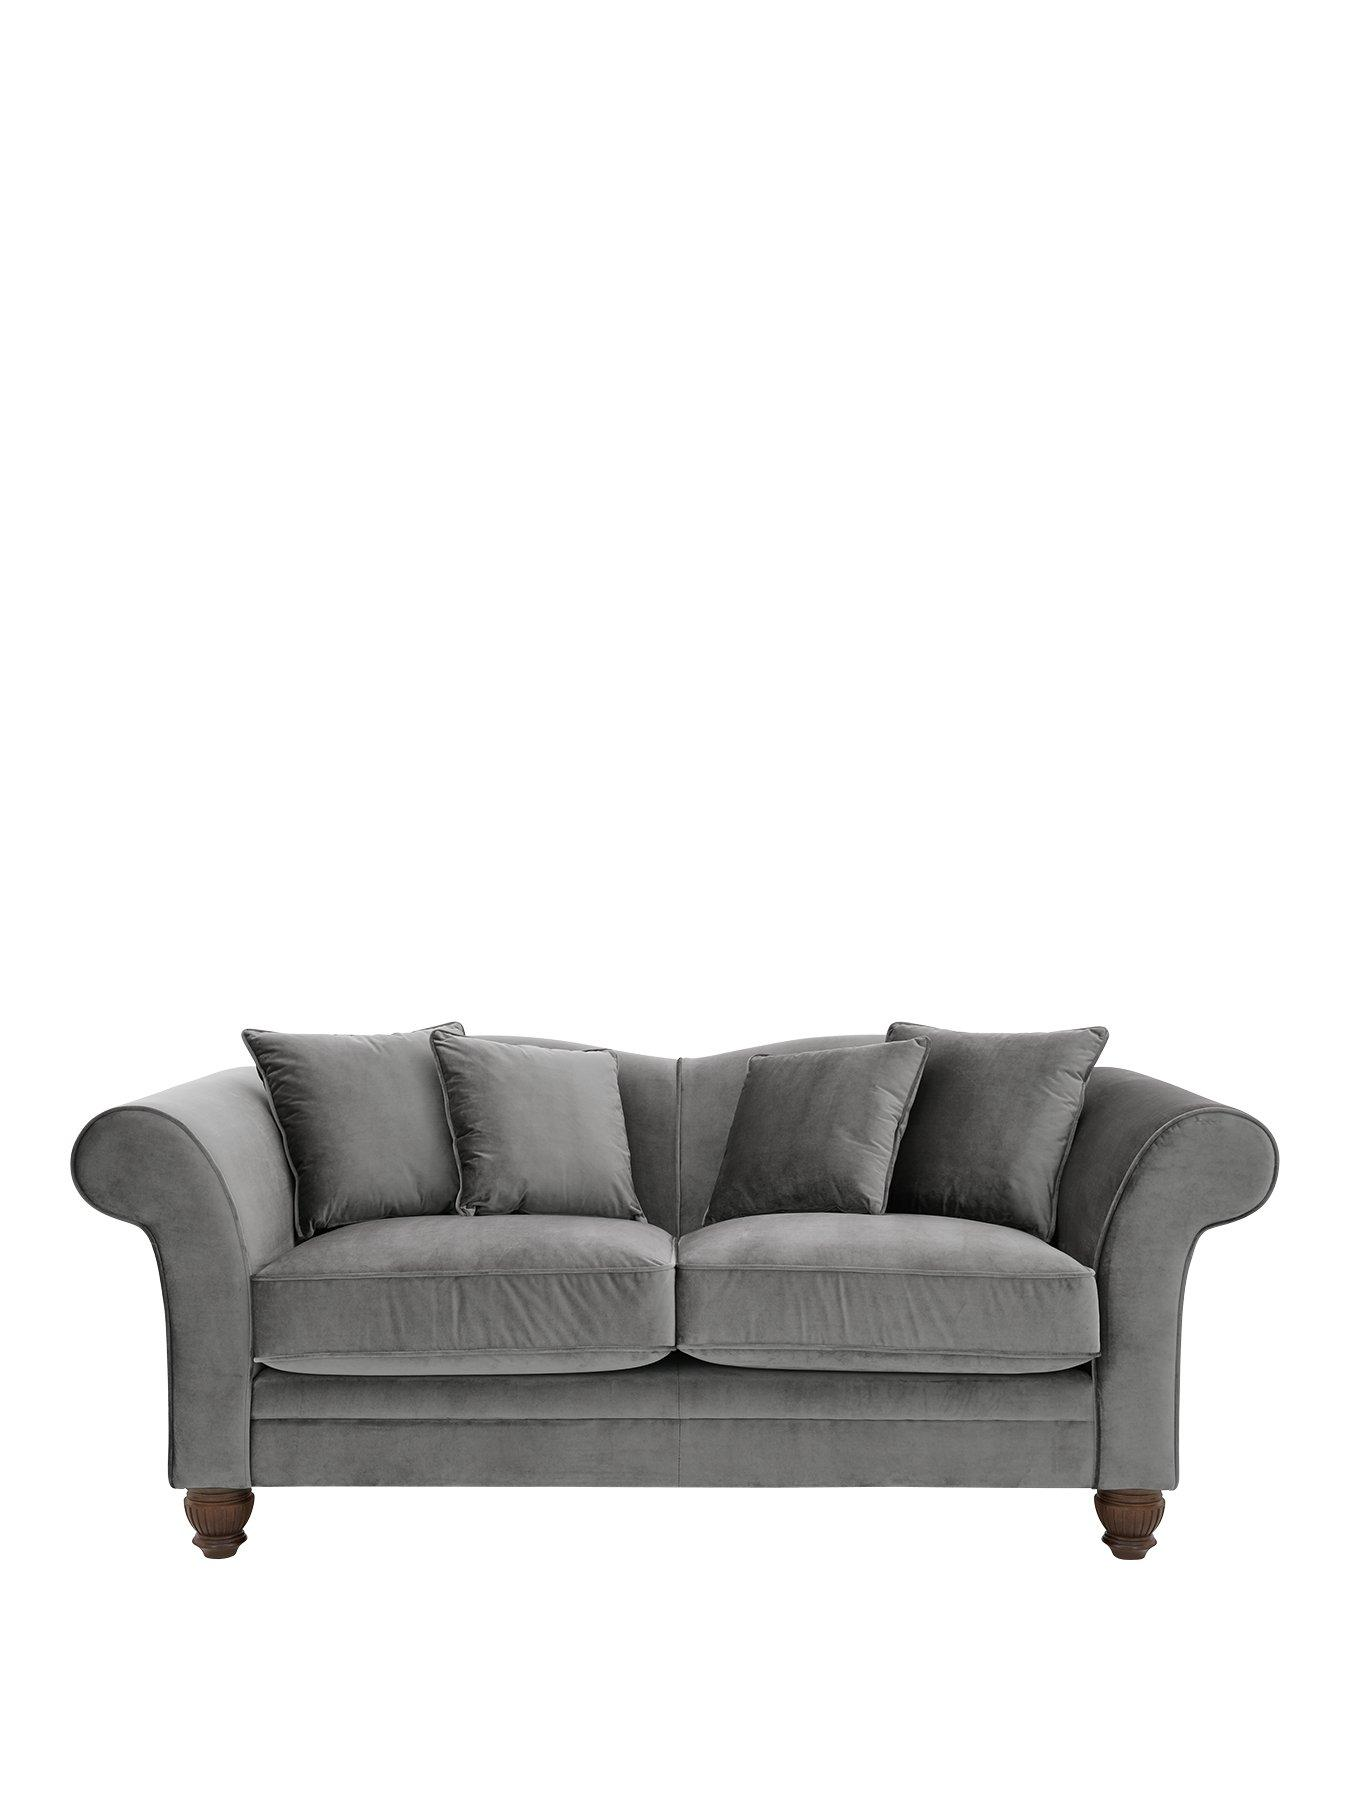 luxe 2 seat sofa slipcover two tone sectional collection sofas home garden www very co uk savannah seater fabric